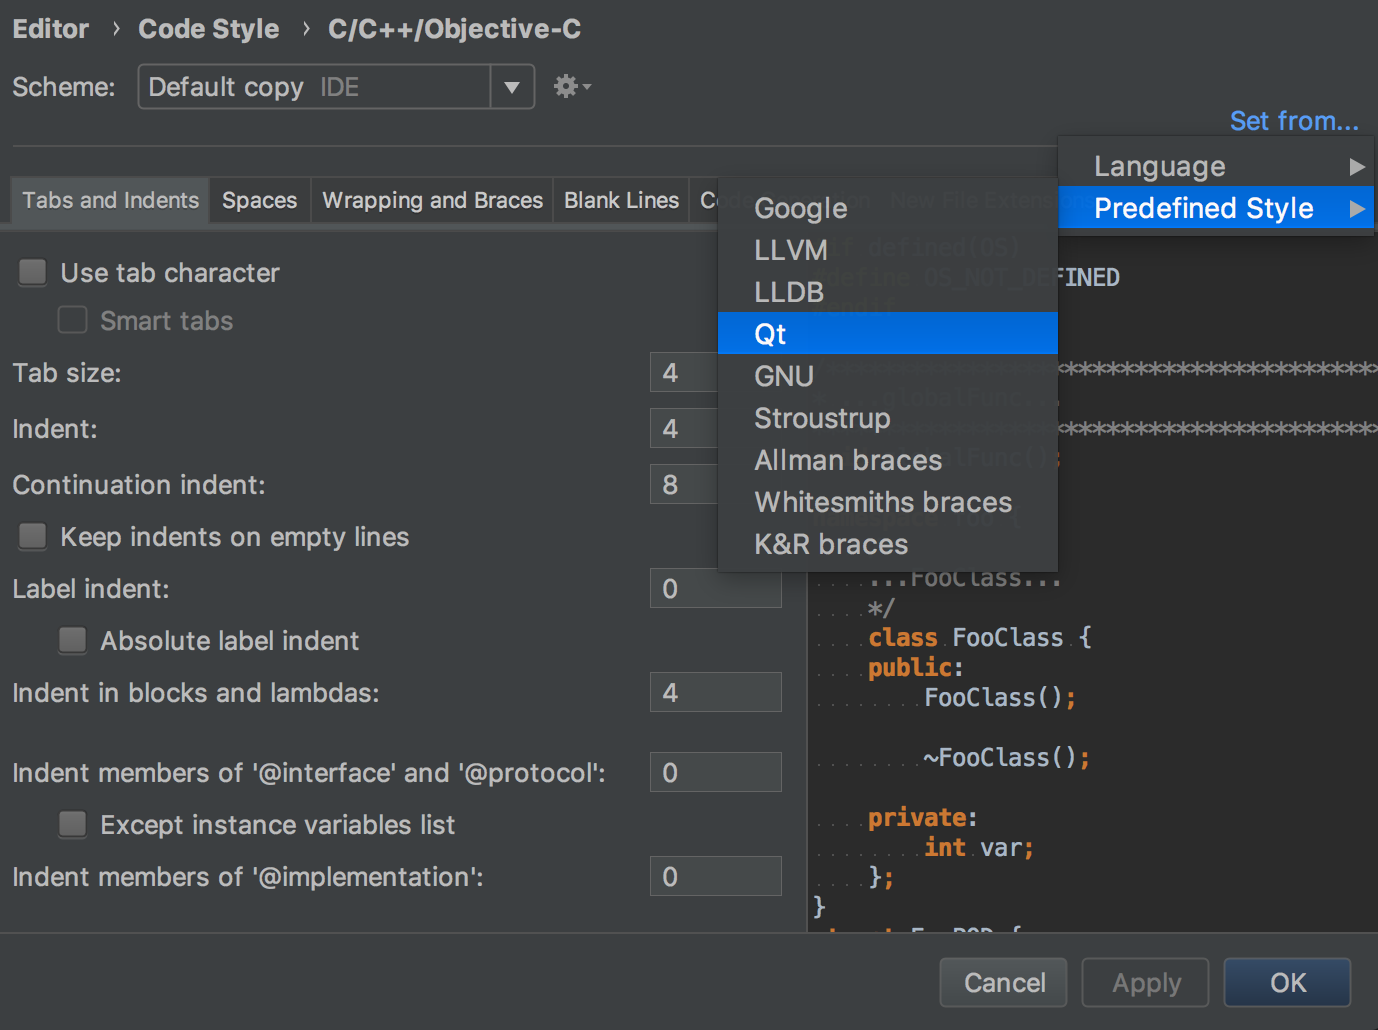 Using code style settings from predefined guidelines